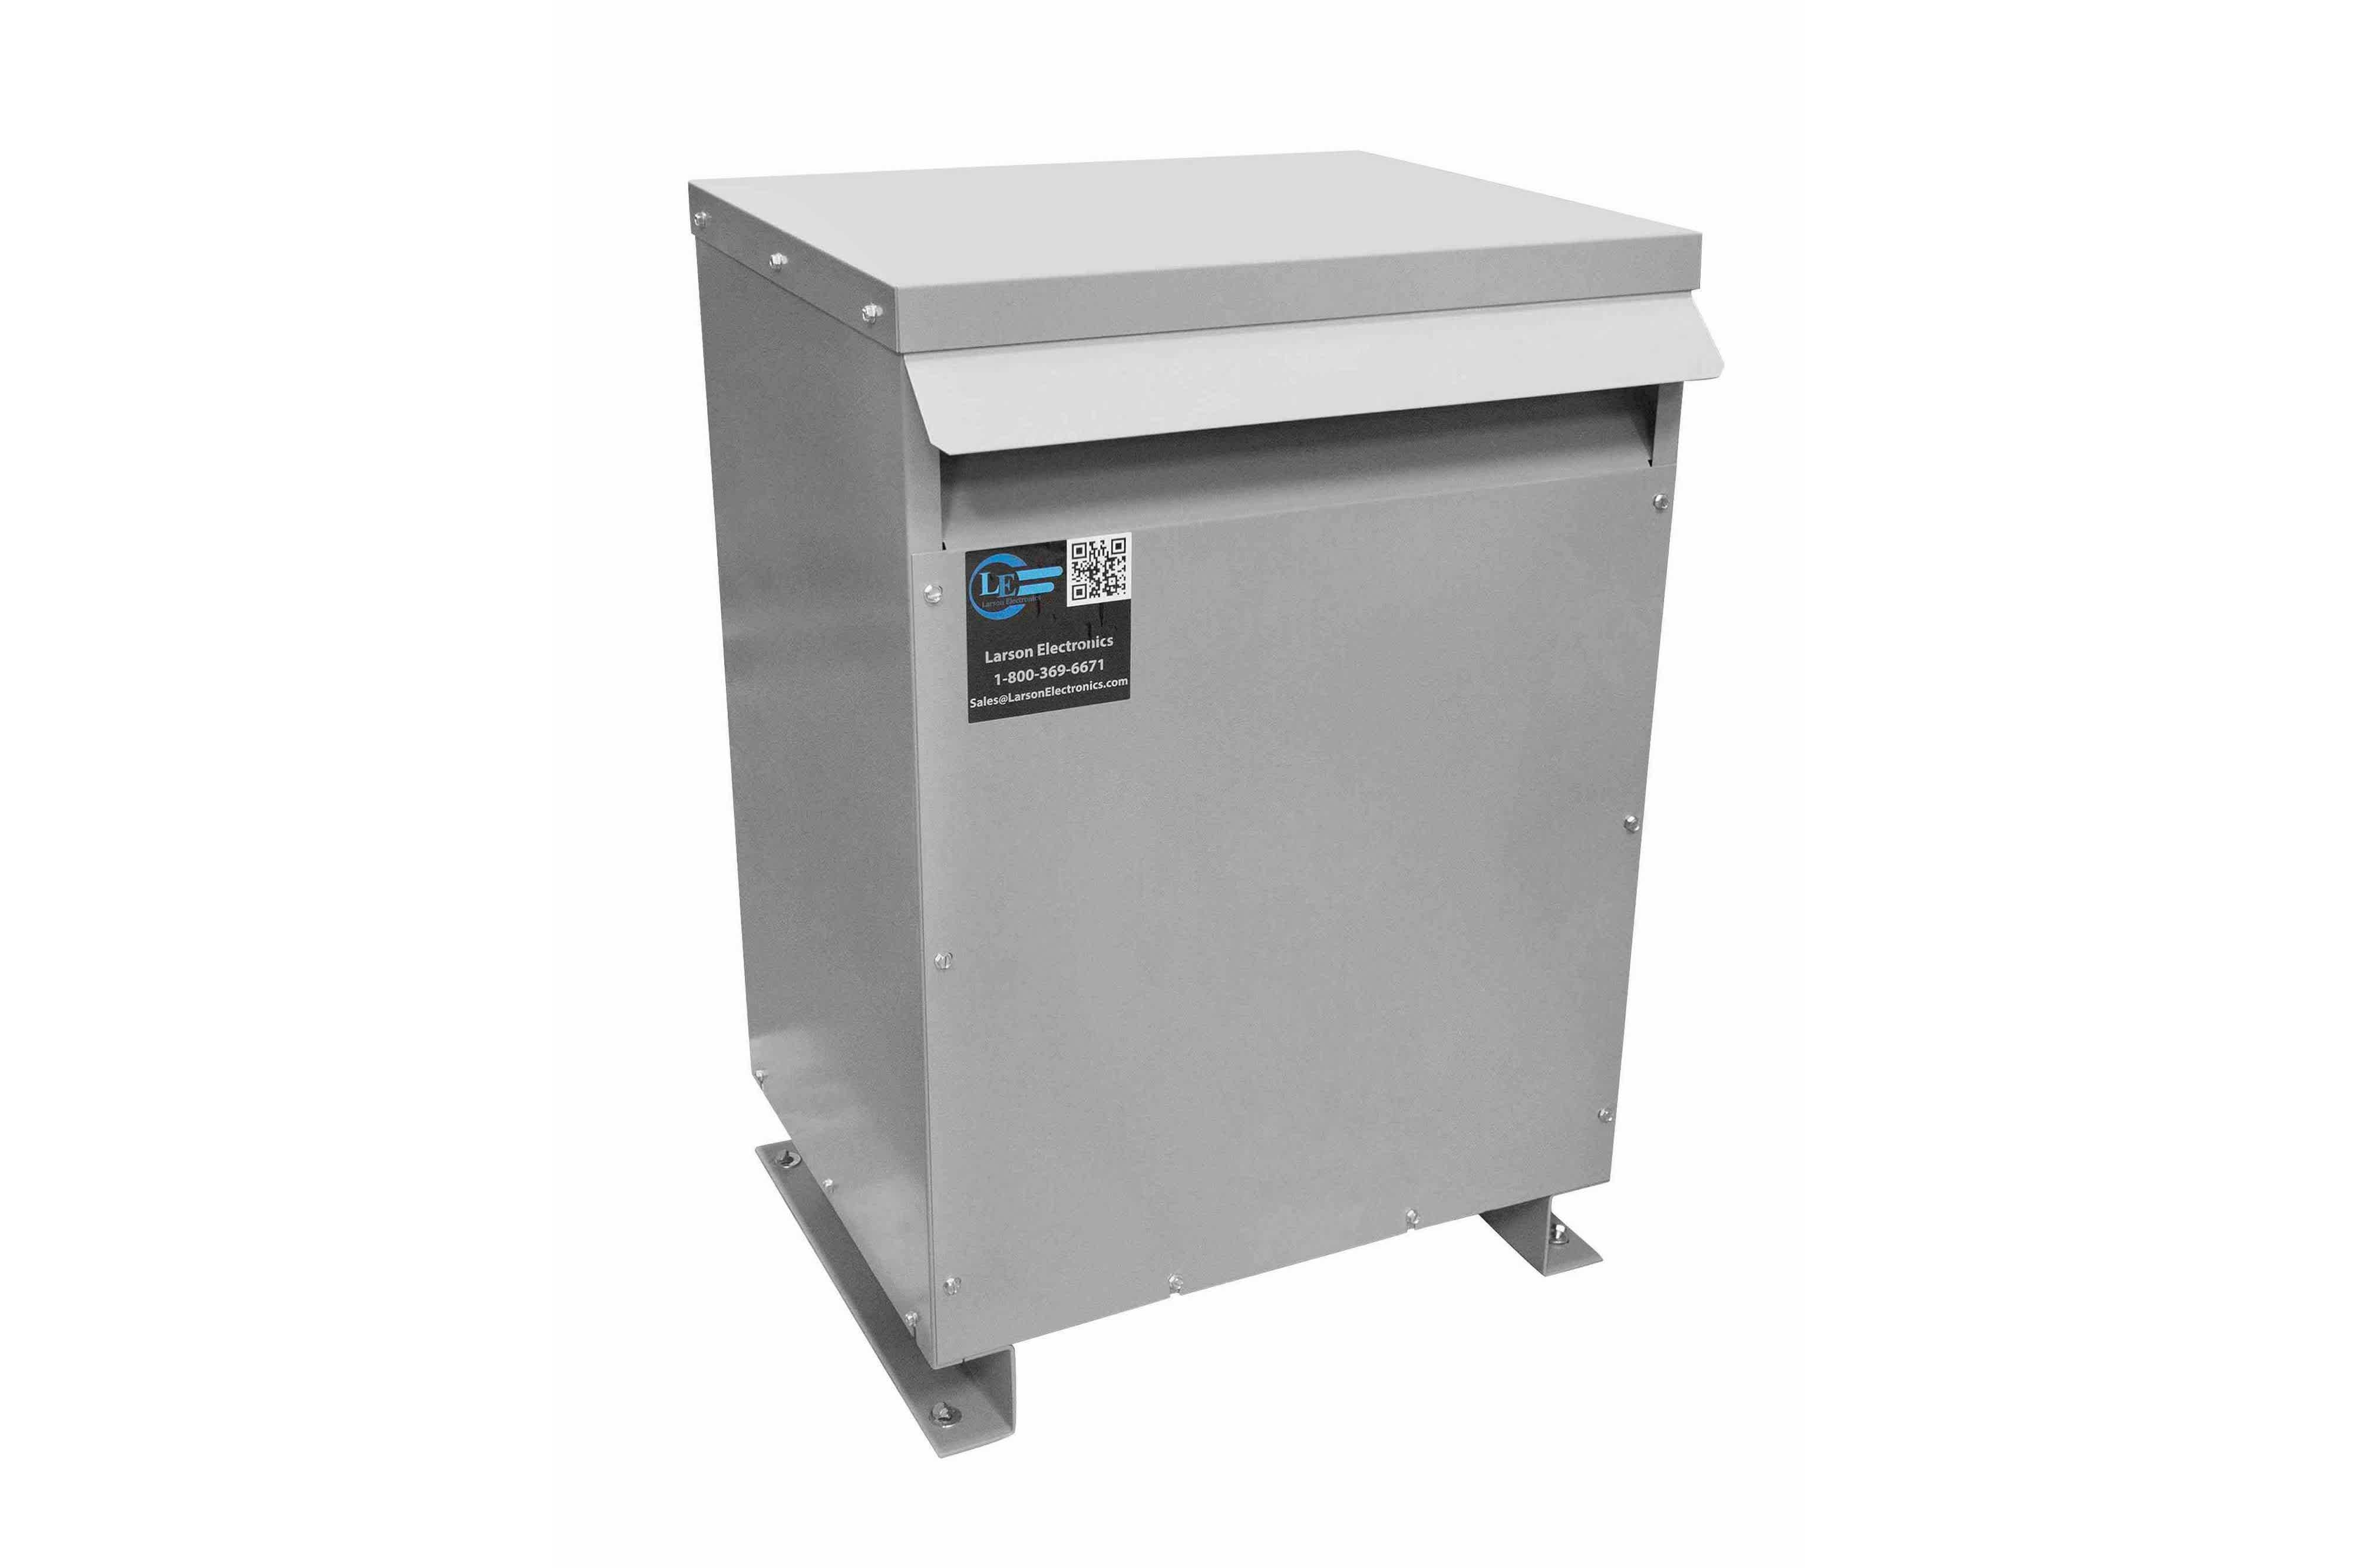 26 kVA 3PH Isolation Transformer, 400V Wye Primary, 208Y/120 Wye-N Secondary, N3R, Ventilated, 60 Hz